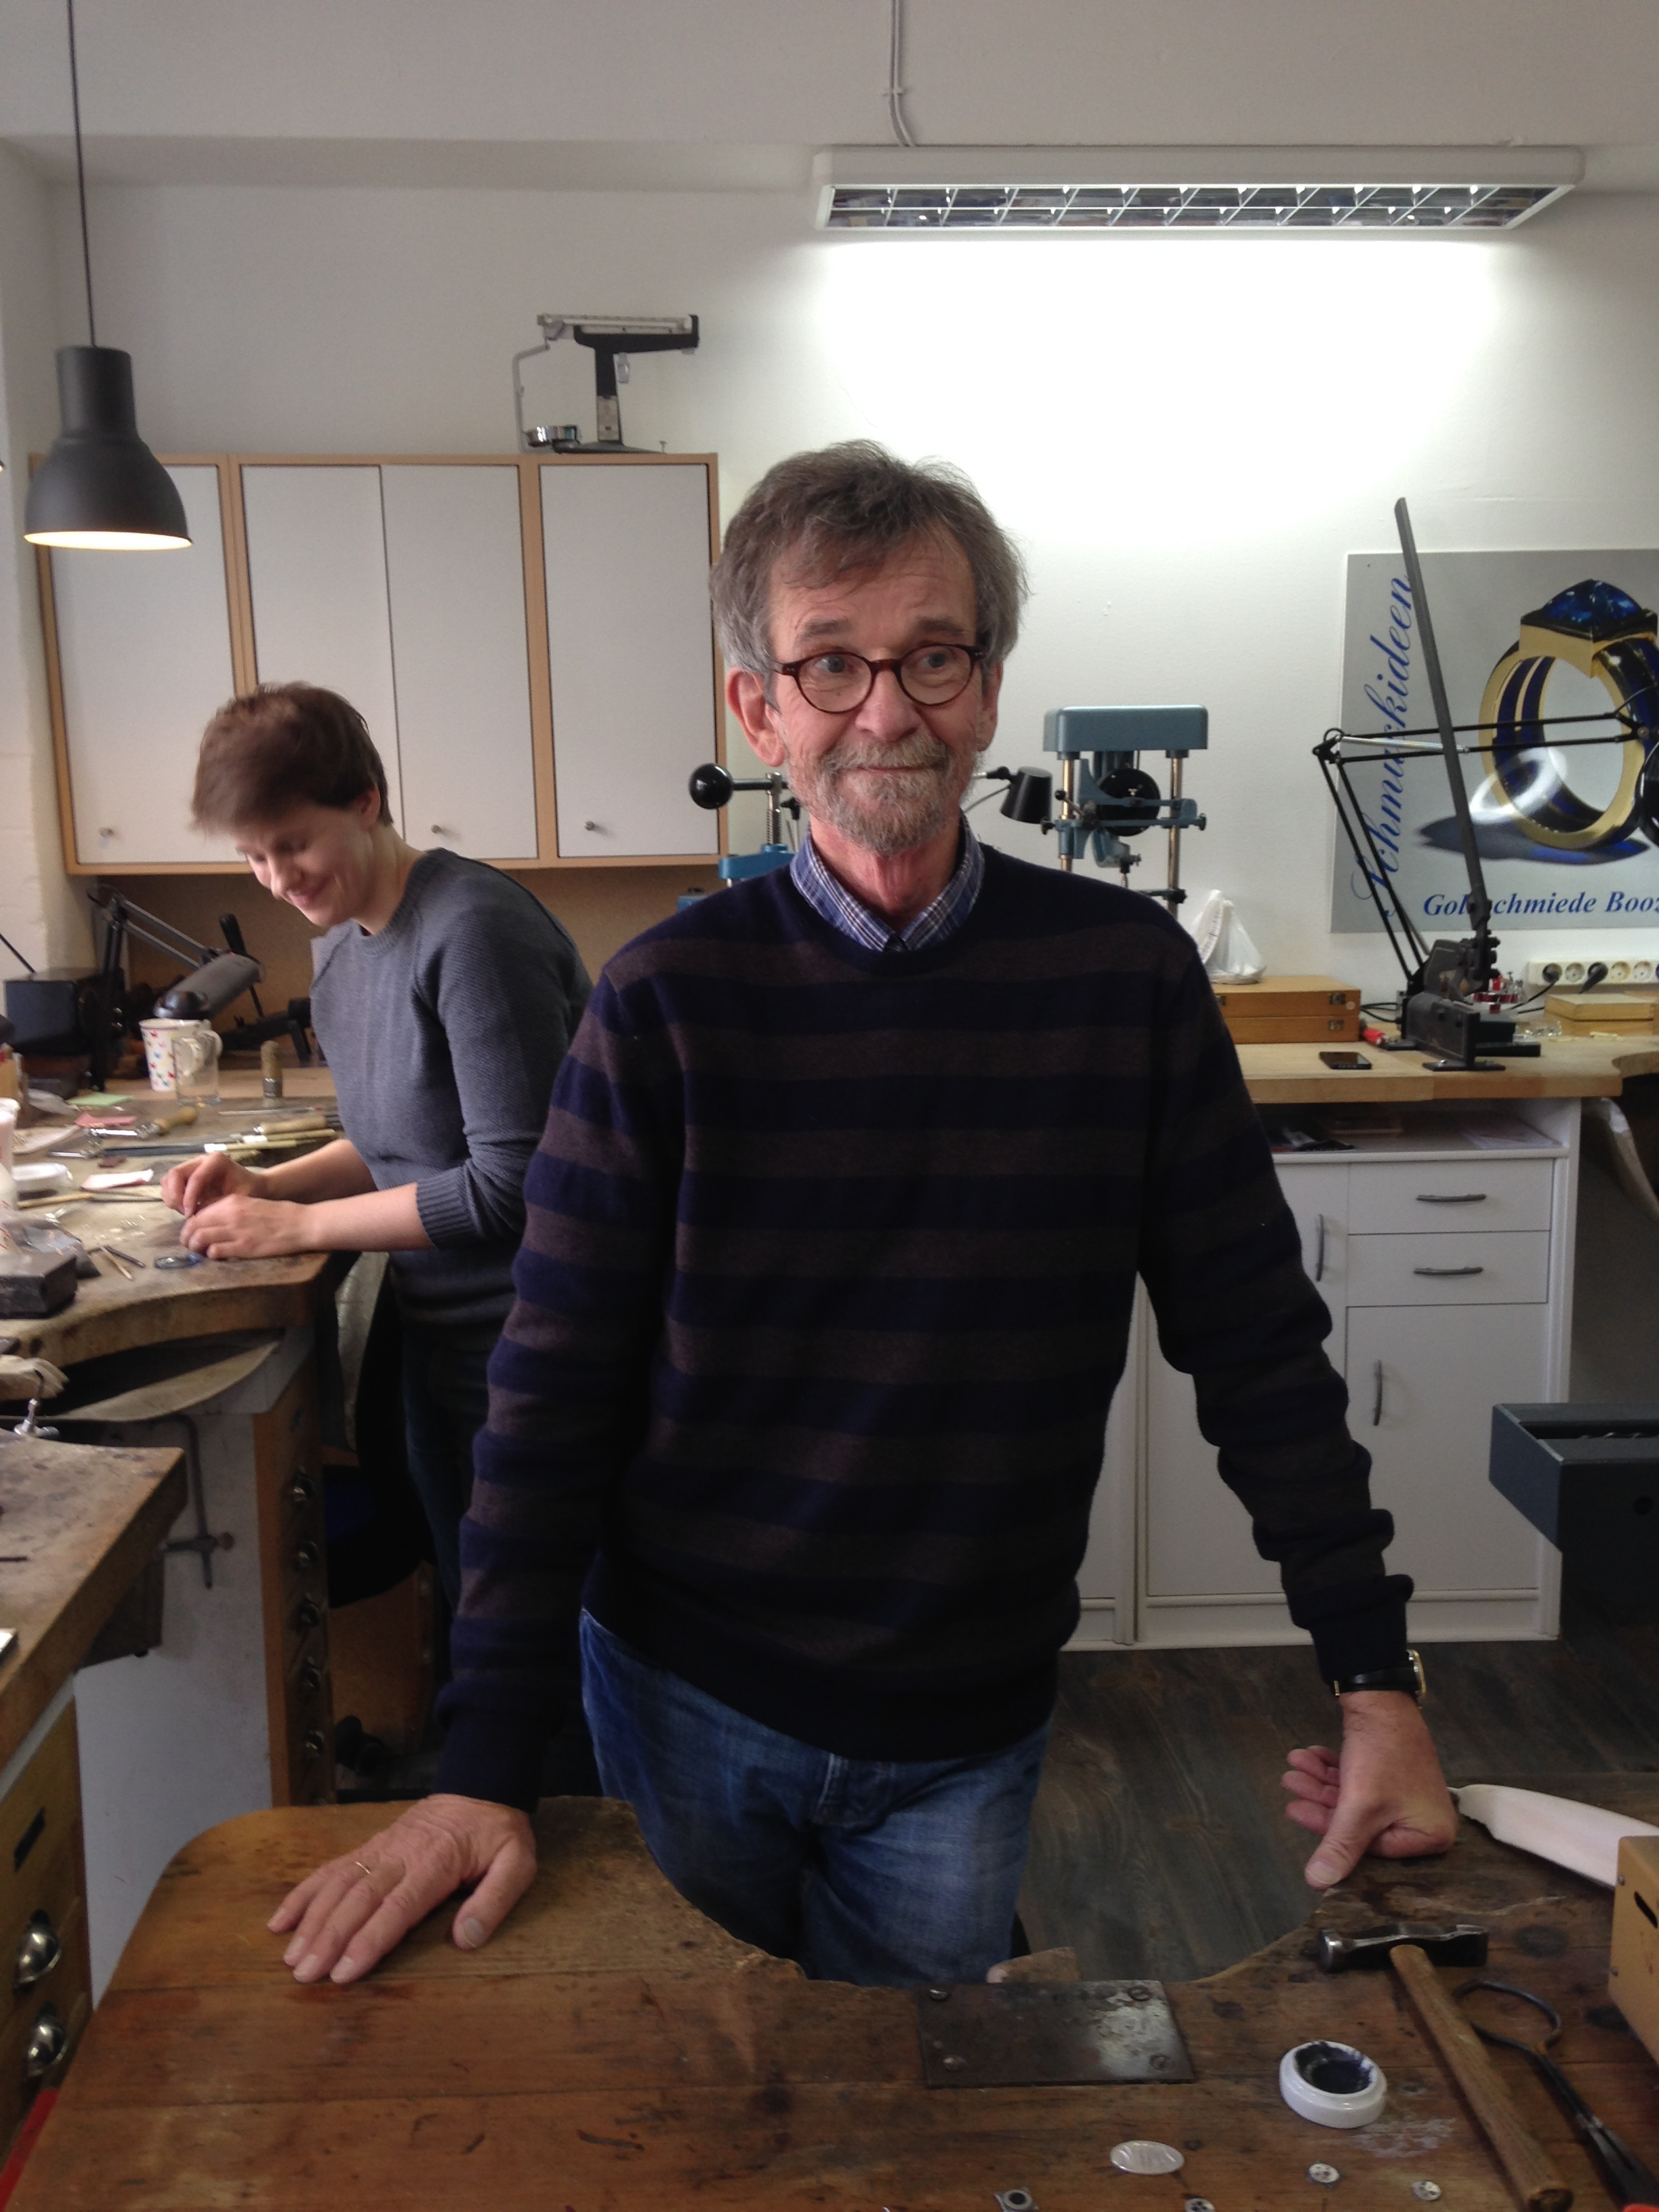 Goldsmith and owner Peter Booz and journey woman Lena Hollweg having fun in the workshop.